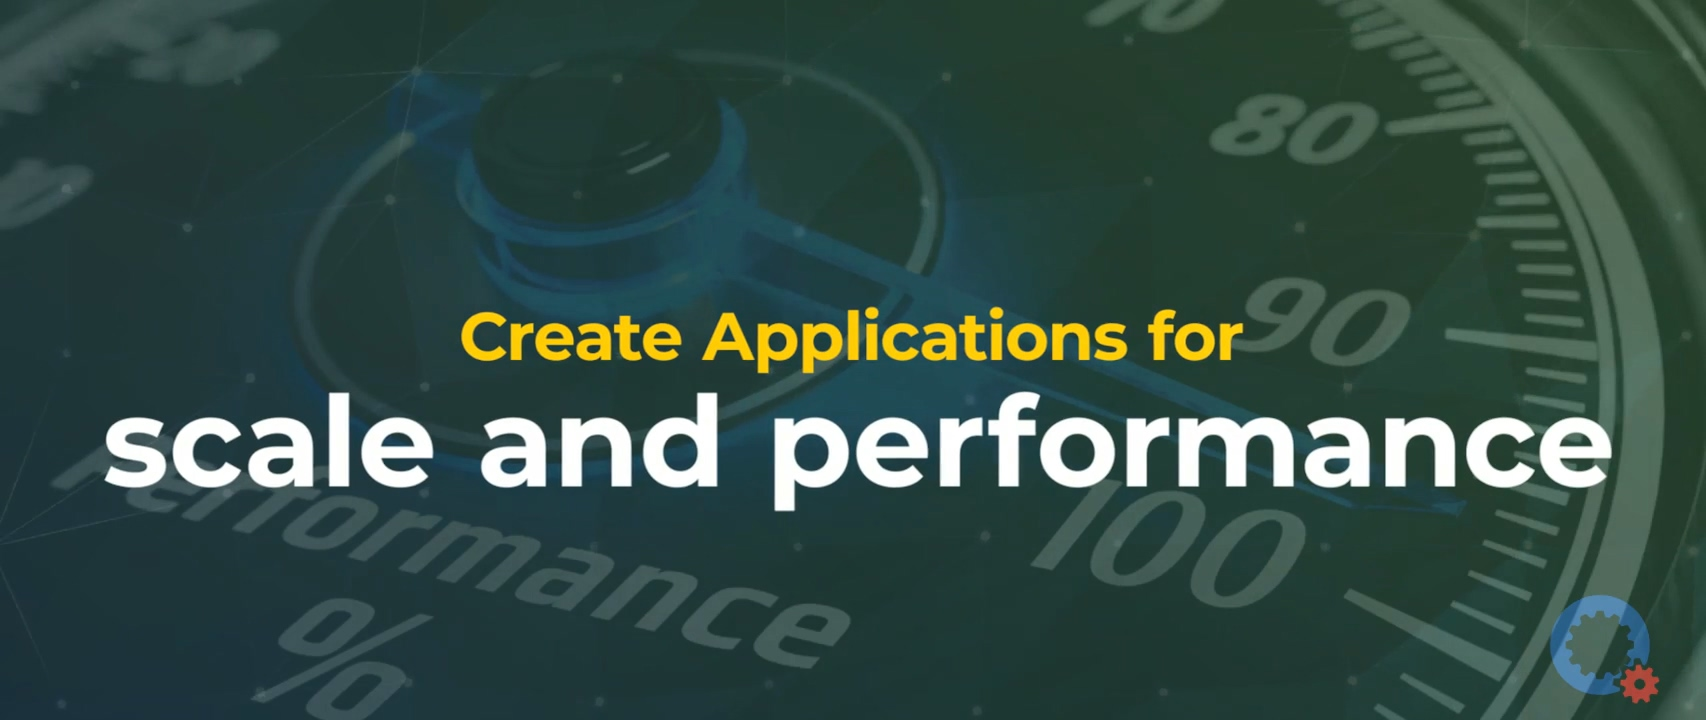 Create Applications for Scale and Performance